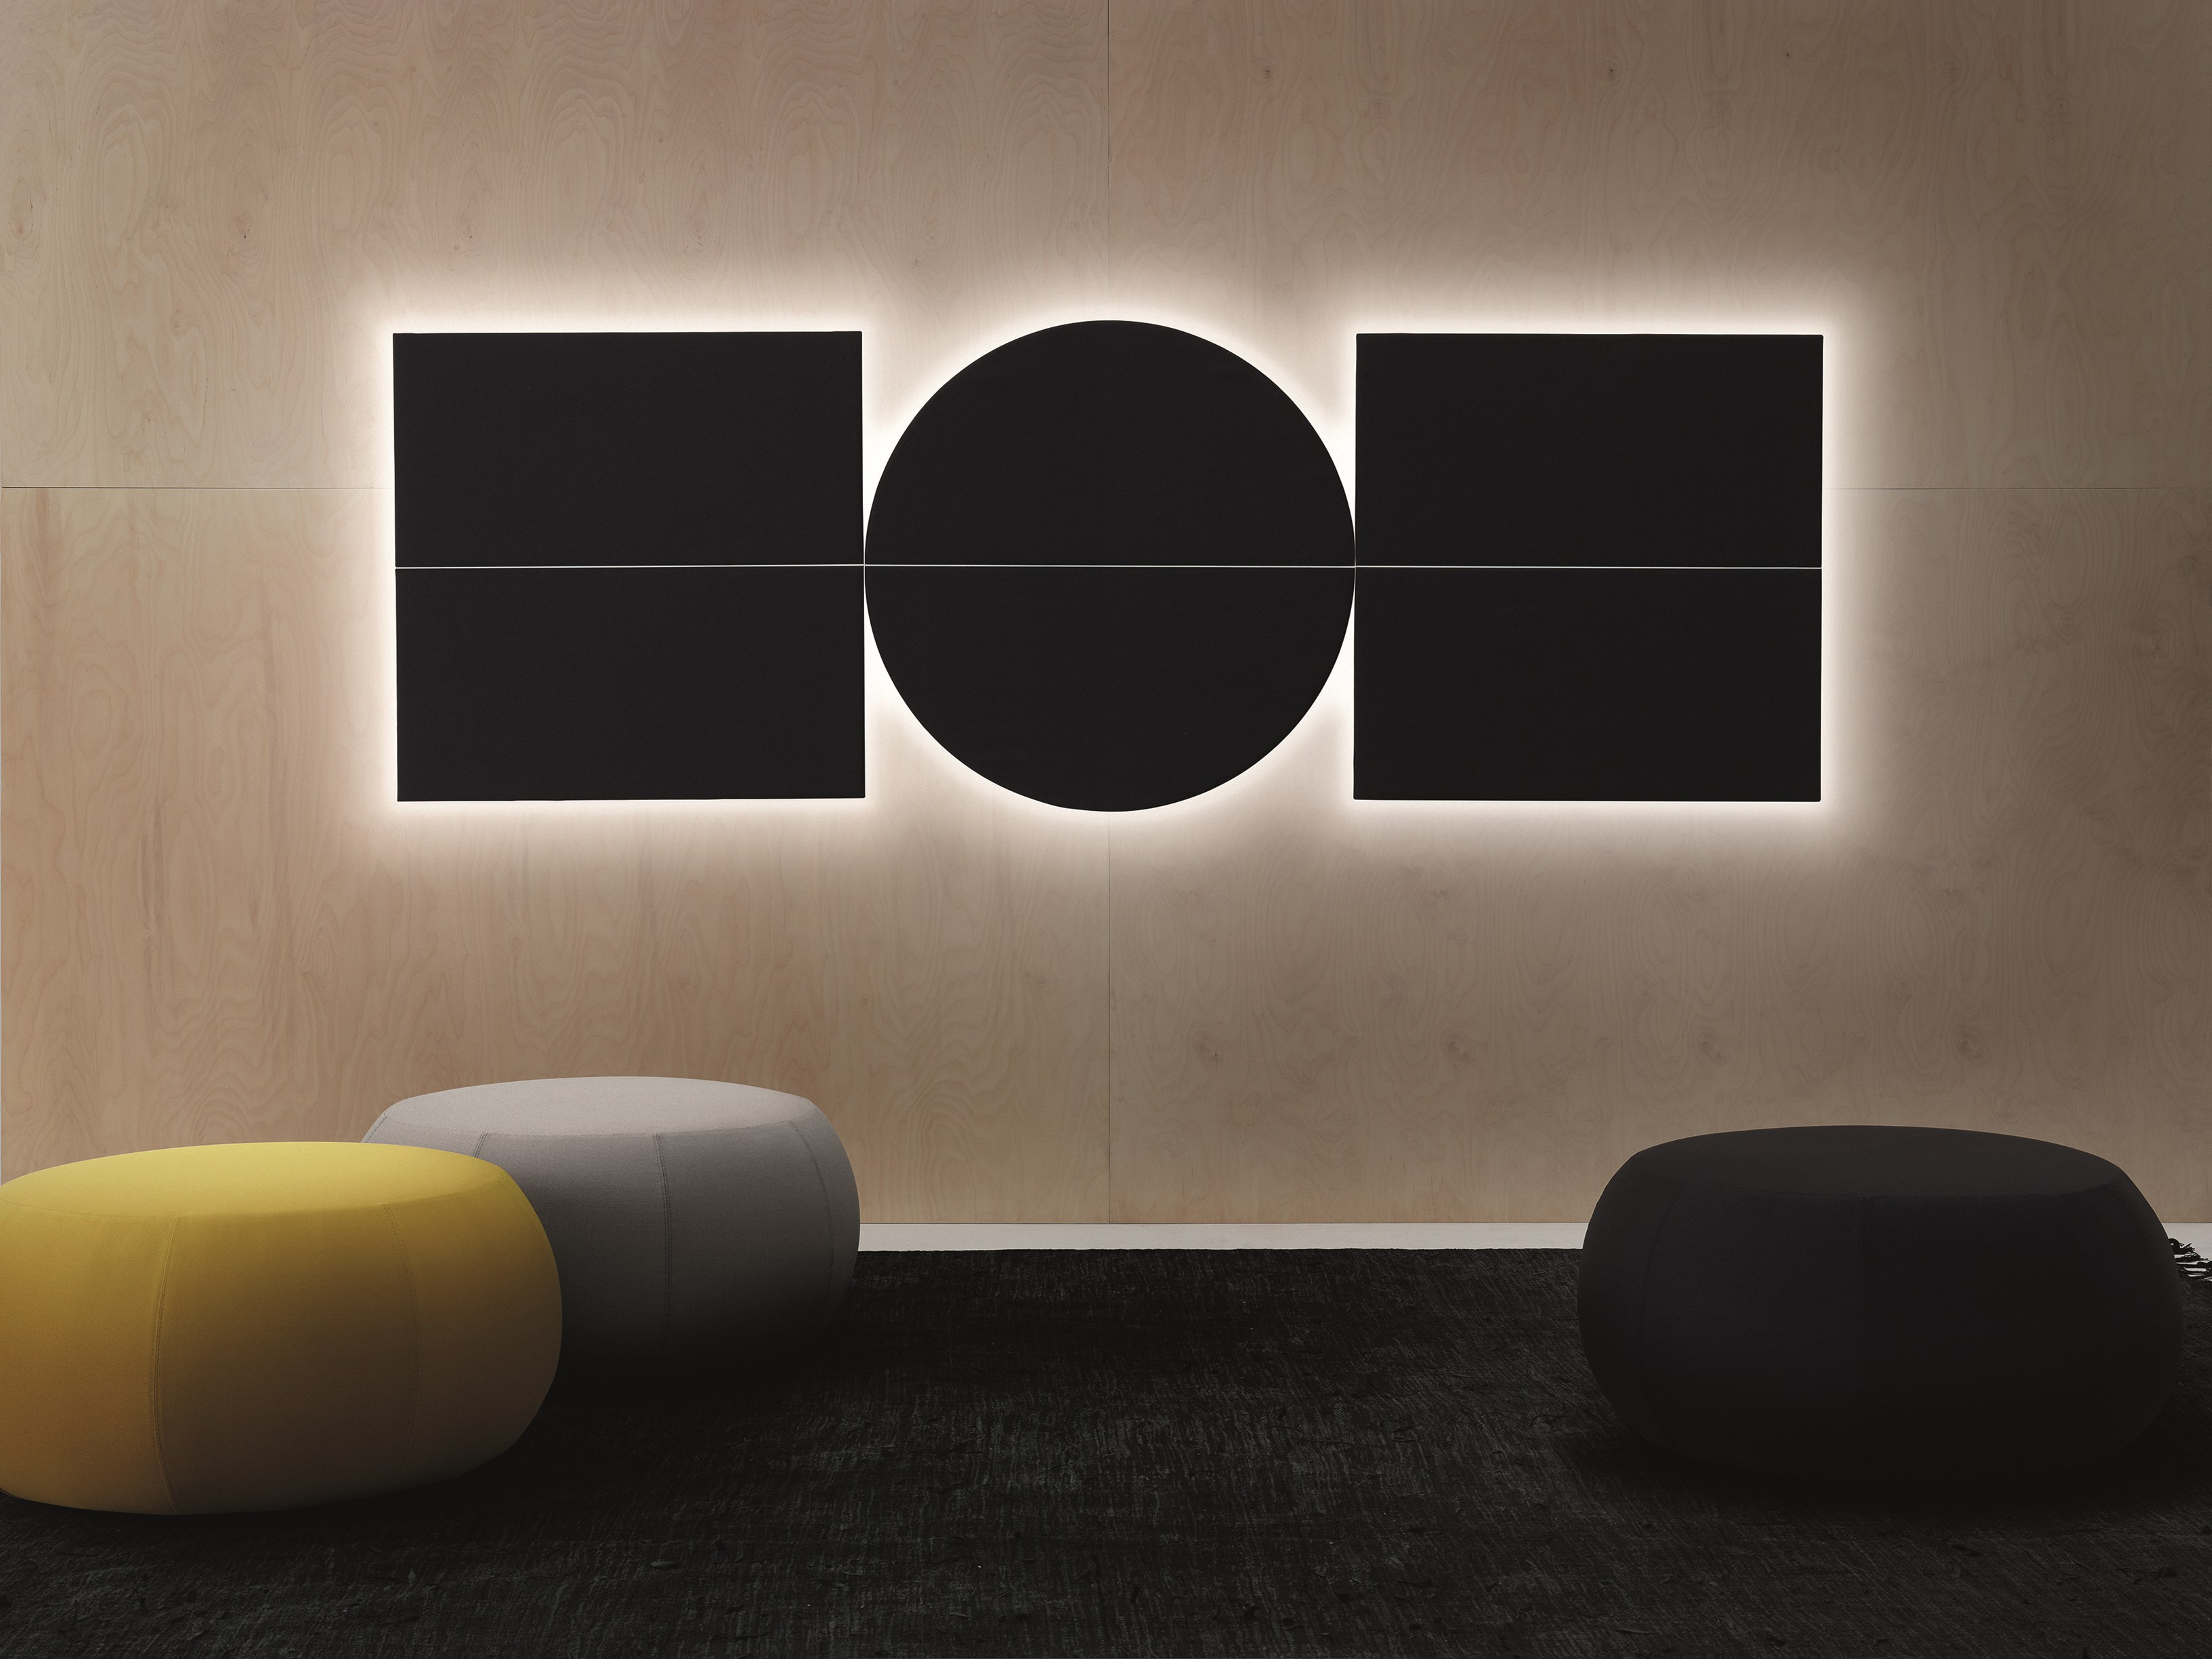 Decorative acoustical panels parentesit by arper design lievore altherr molina - Decorative acoustic wall panels ...